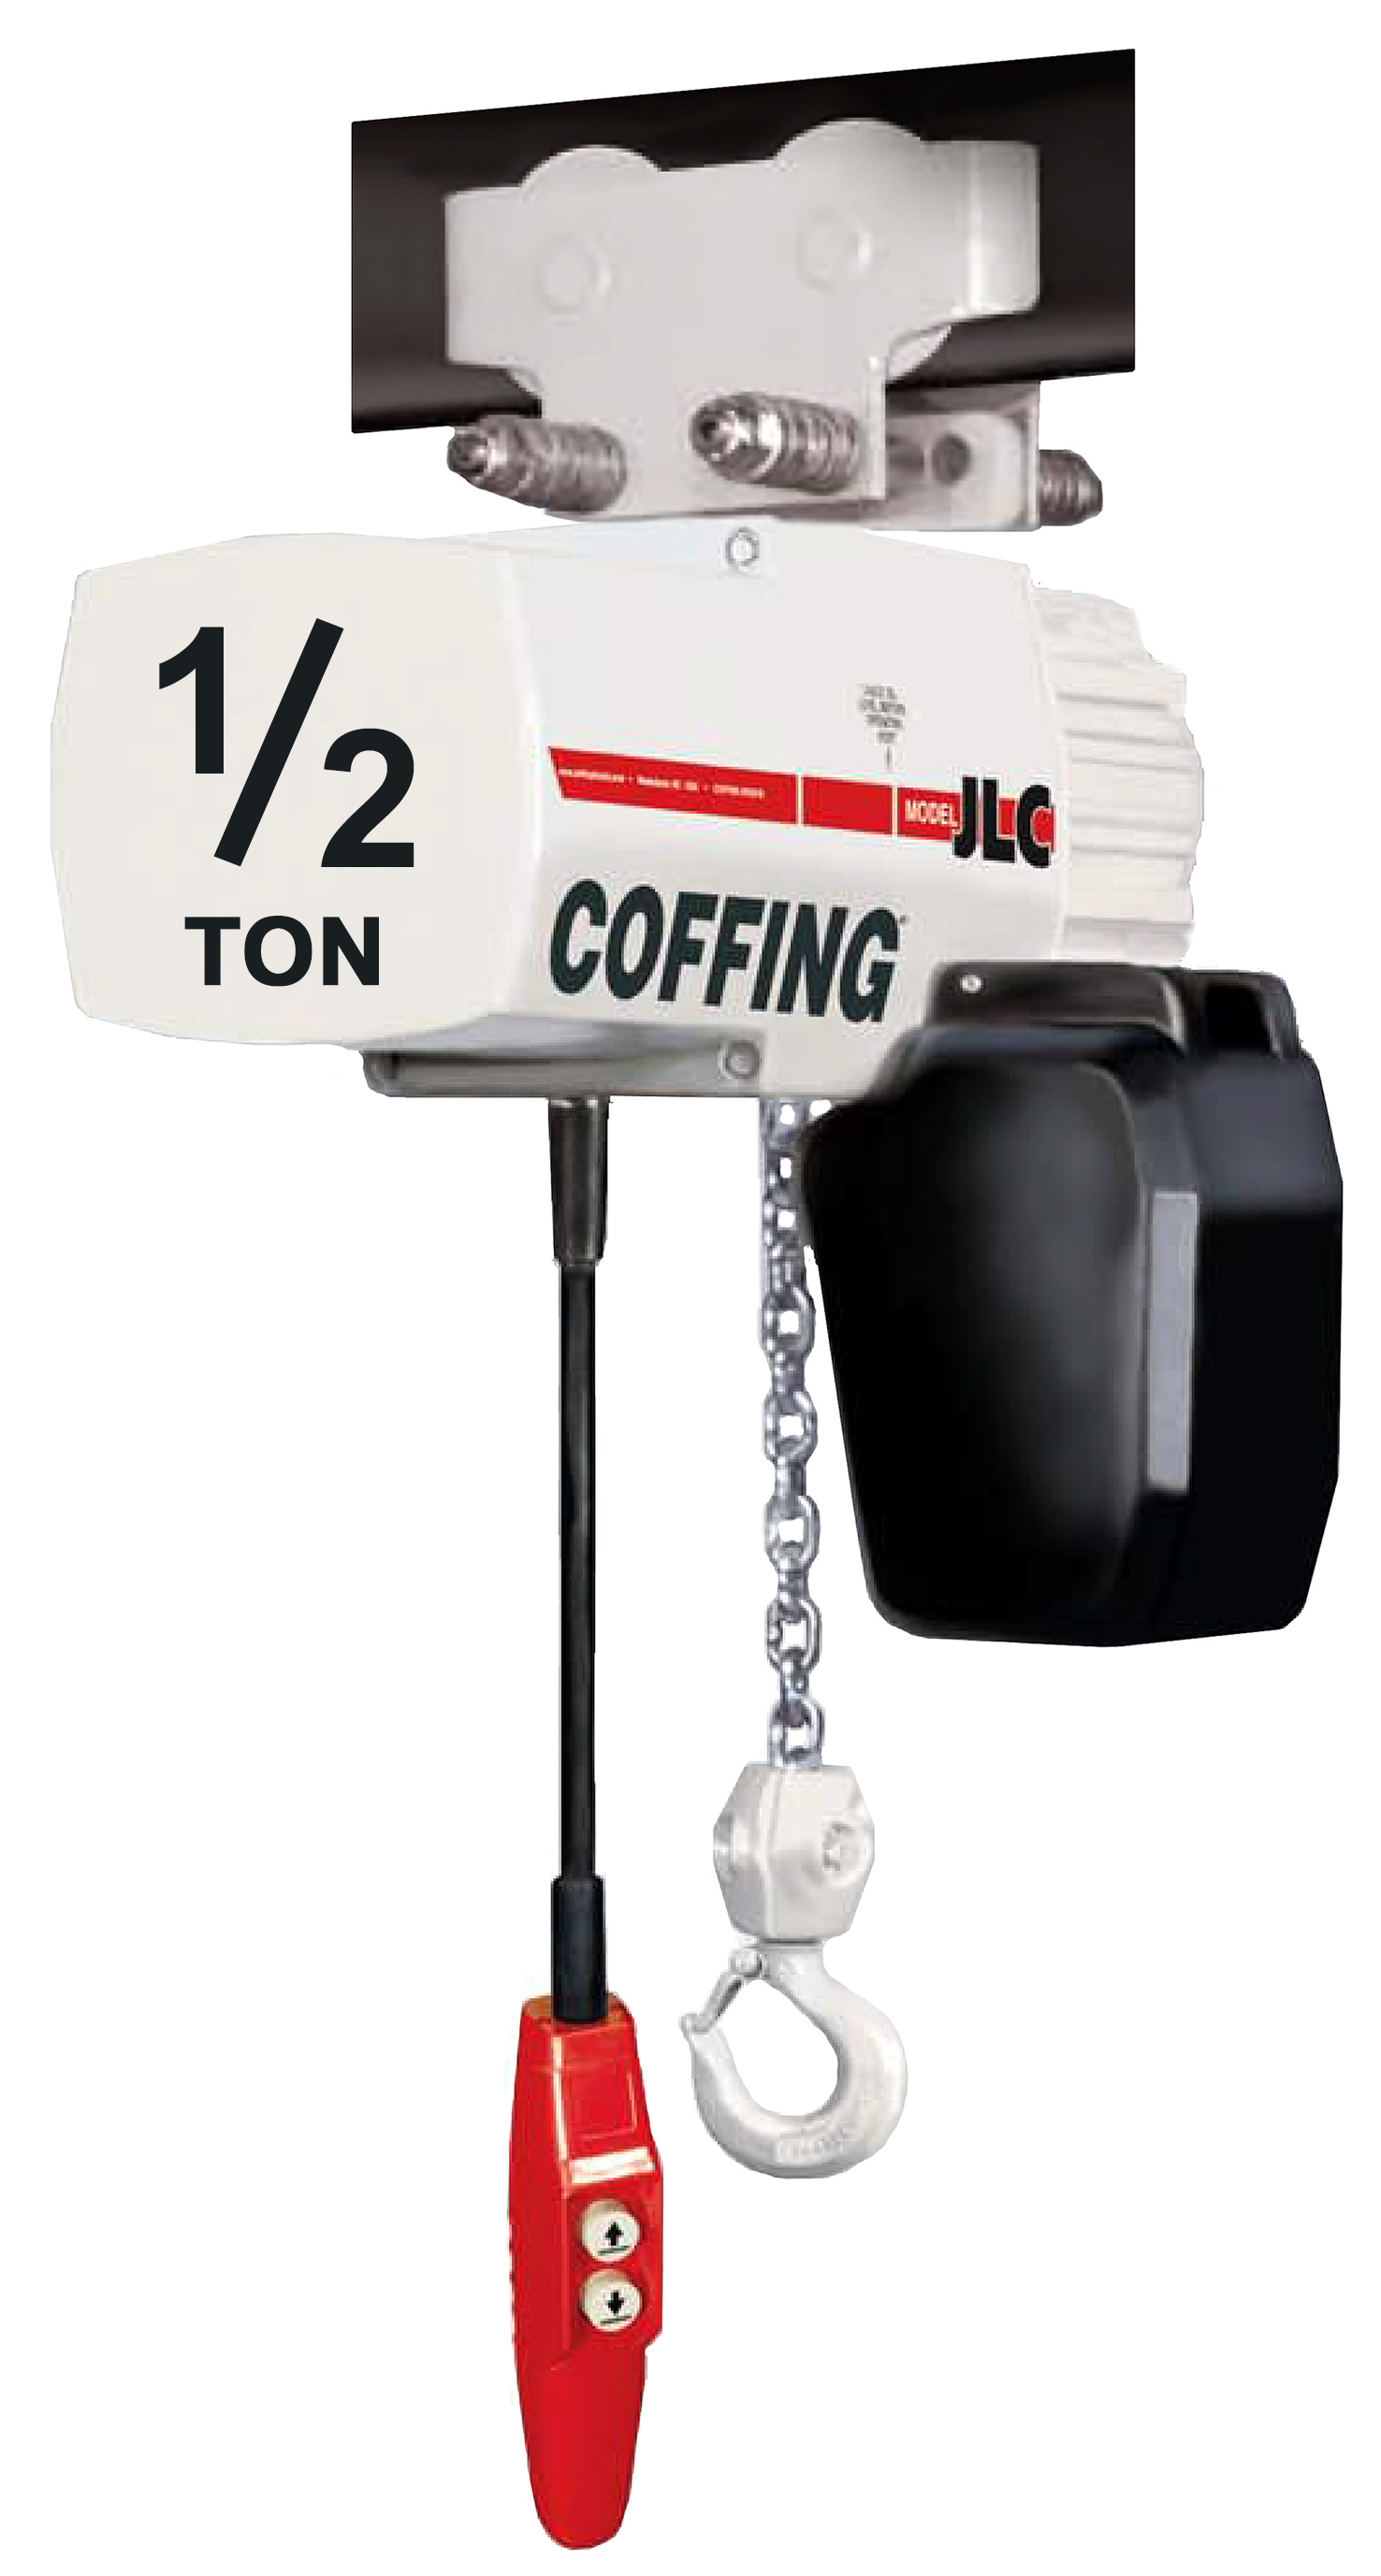 1/2-Ton Coffing JLC Electric Chain Hoist with Trolley